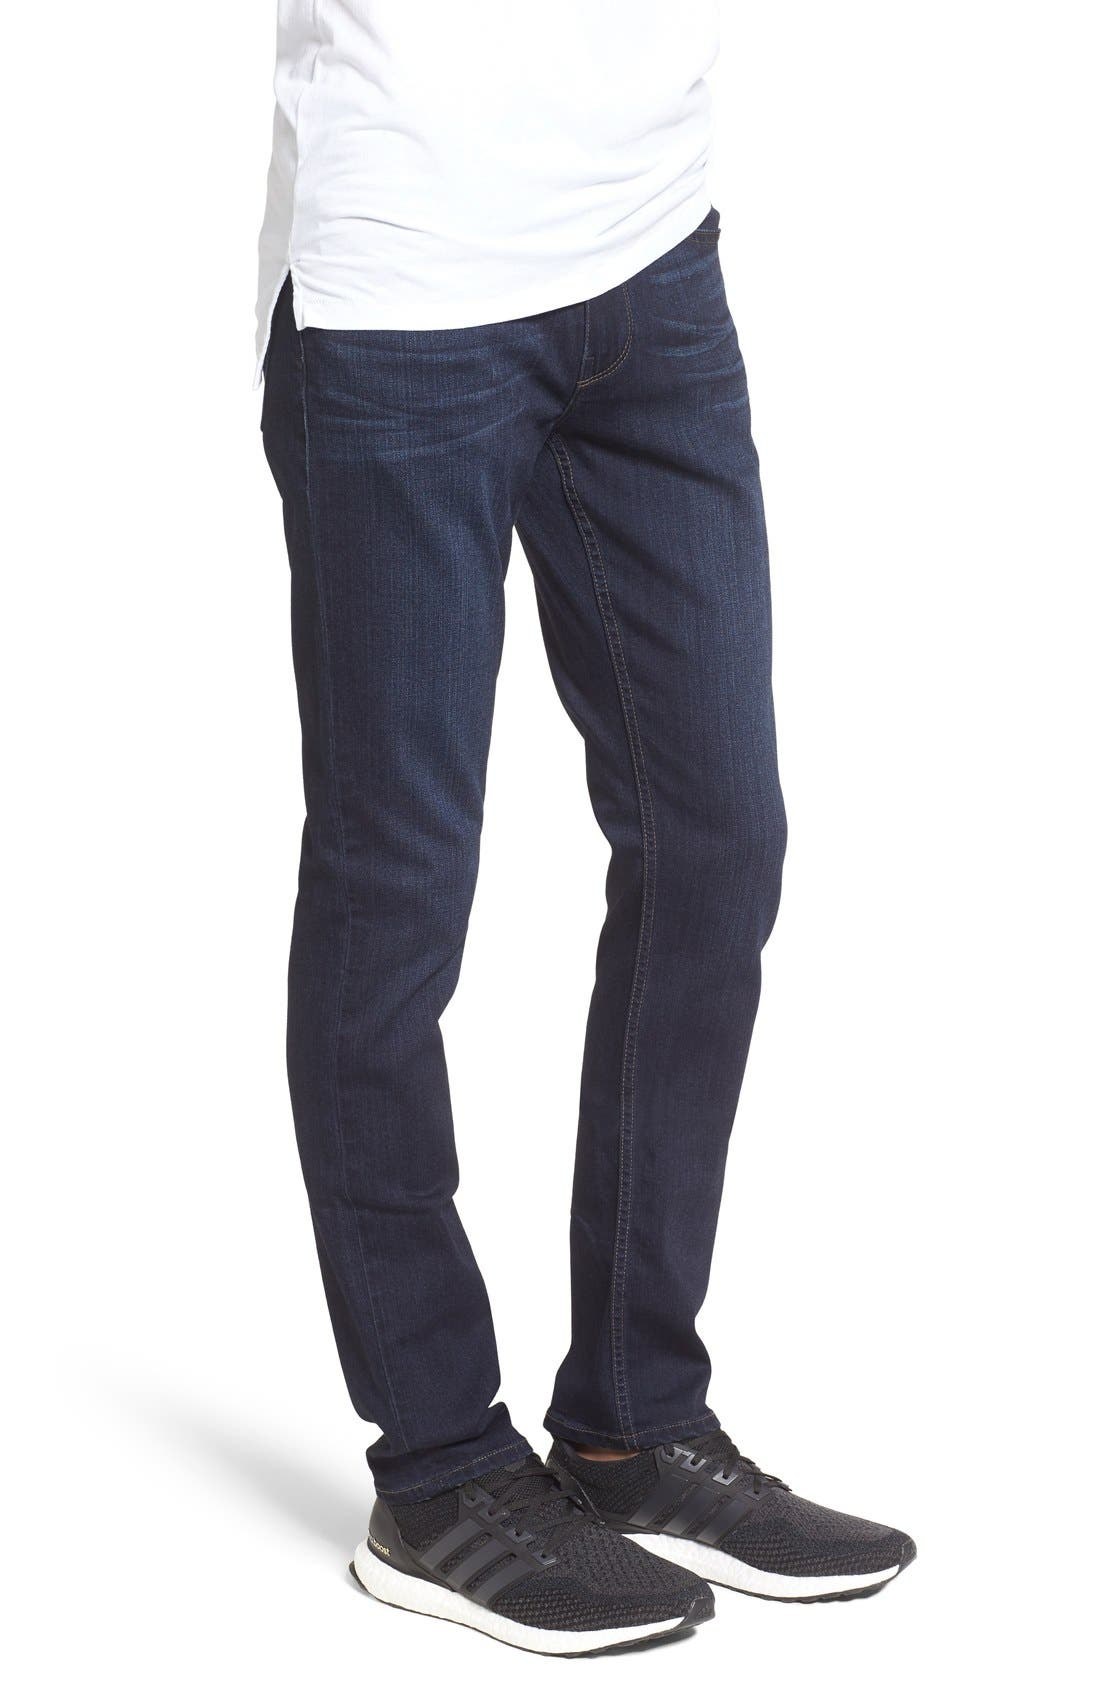 Transcend – Lennox Slim Fit Jeans,                             Alternate thumbnail 5, color,                             RUSS BLUE